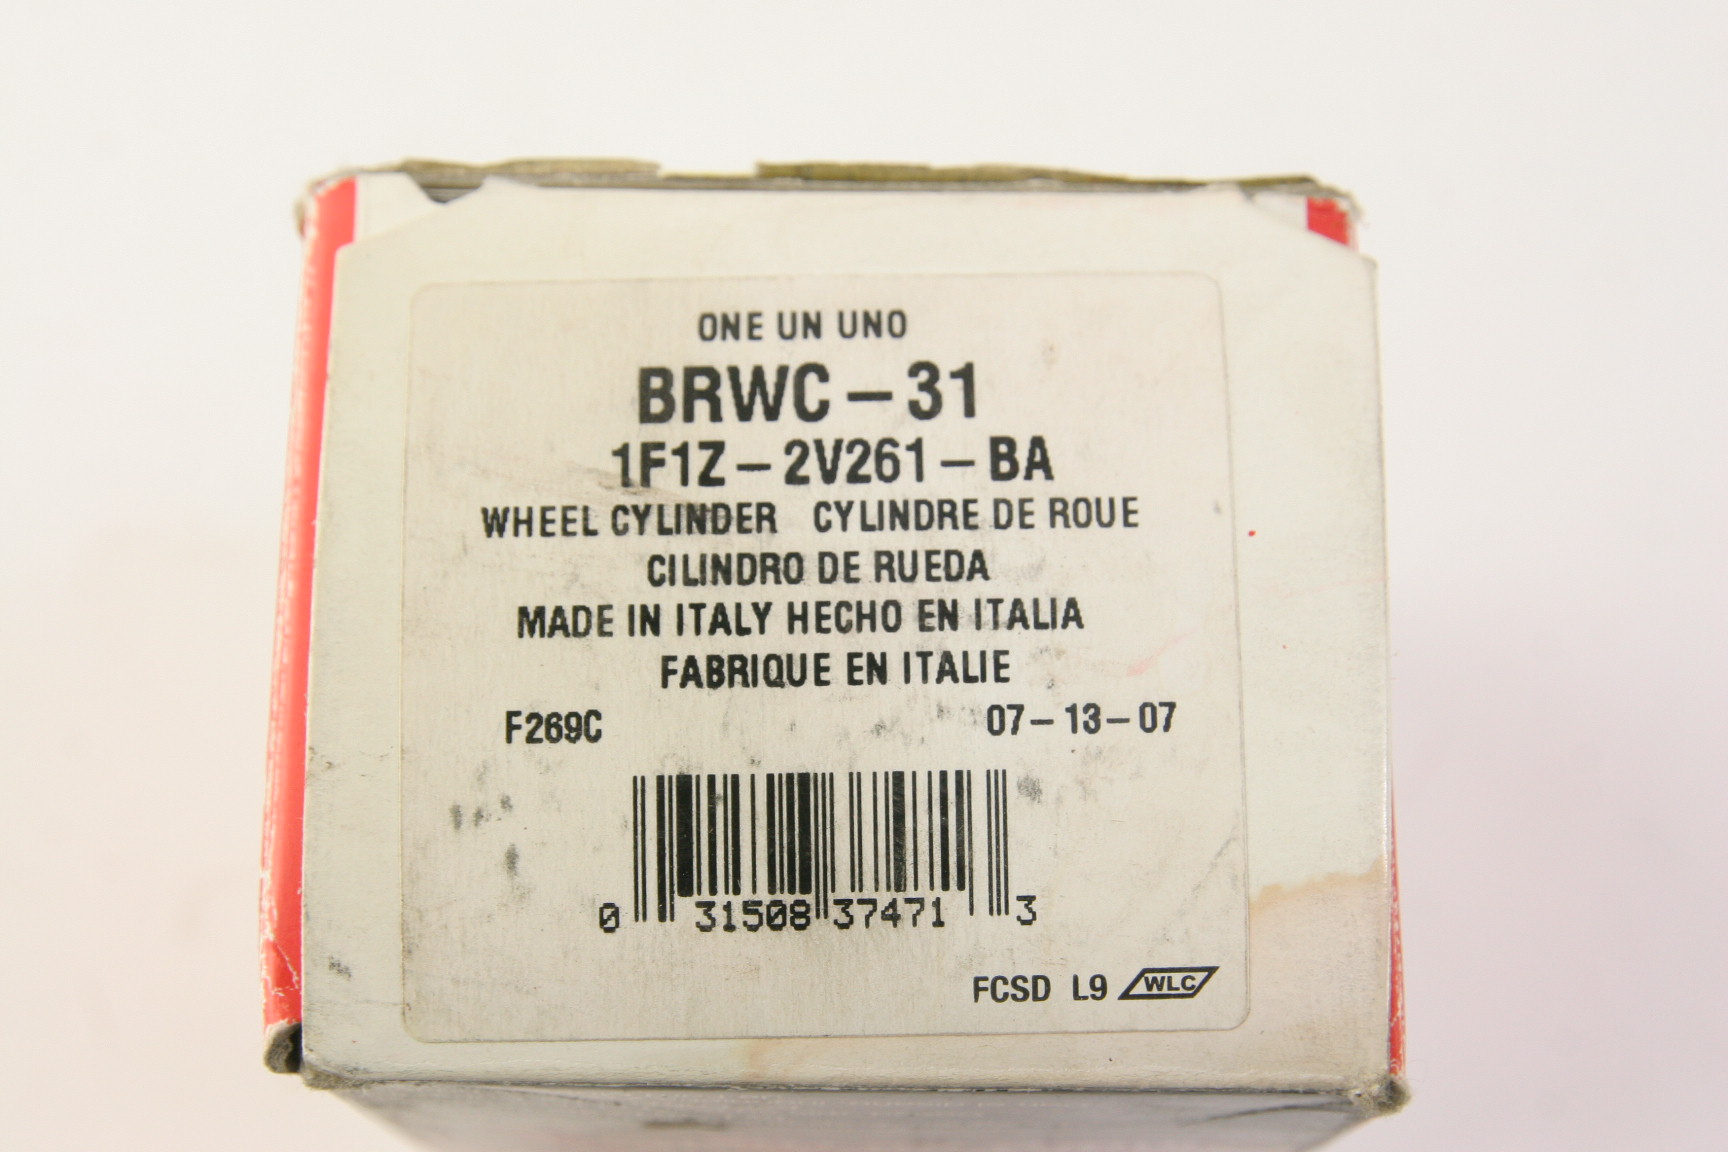 **** New OEM Motorcraft BRWC31 Ford 1F1Z2V261BA Rear Brake Cylinder - image 2